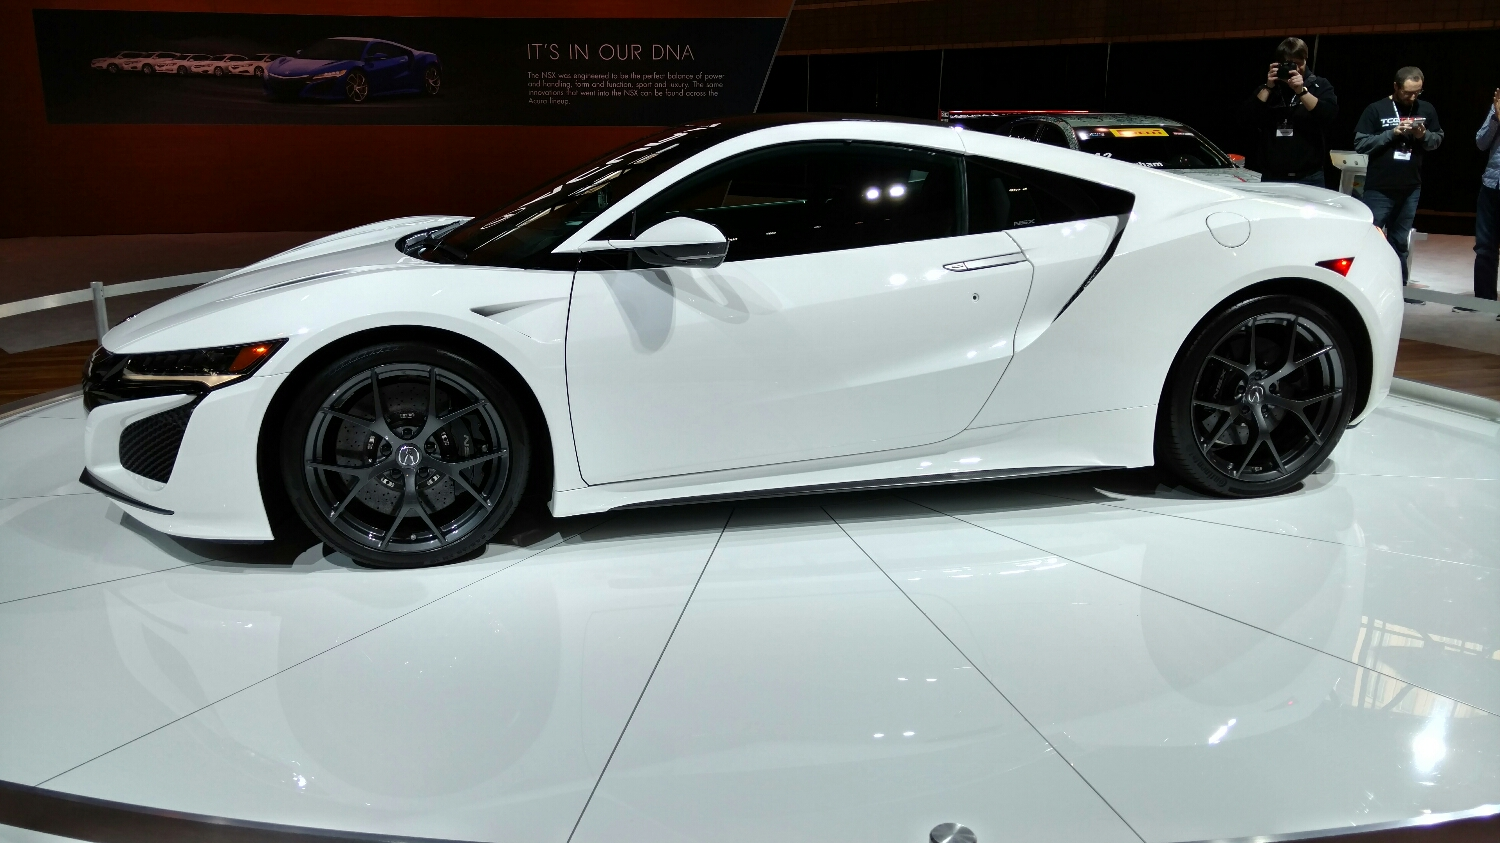 ohhhh the new NSX is so pretty in real life.